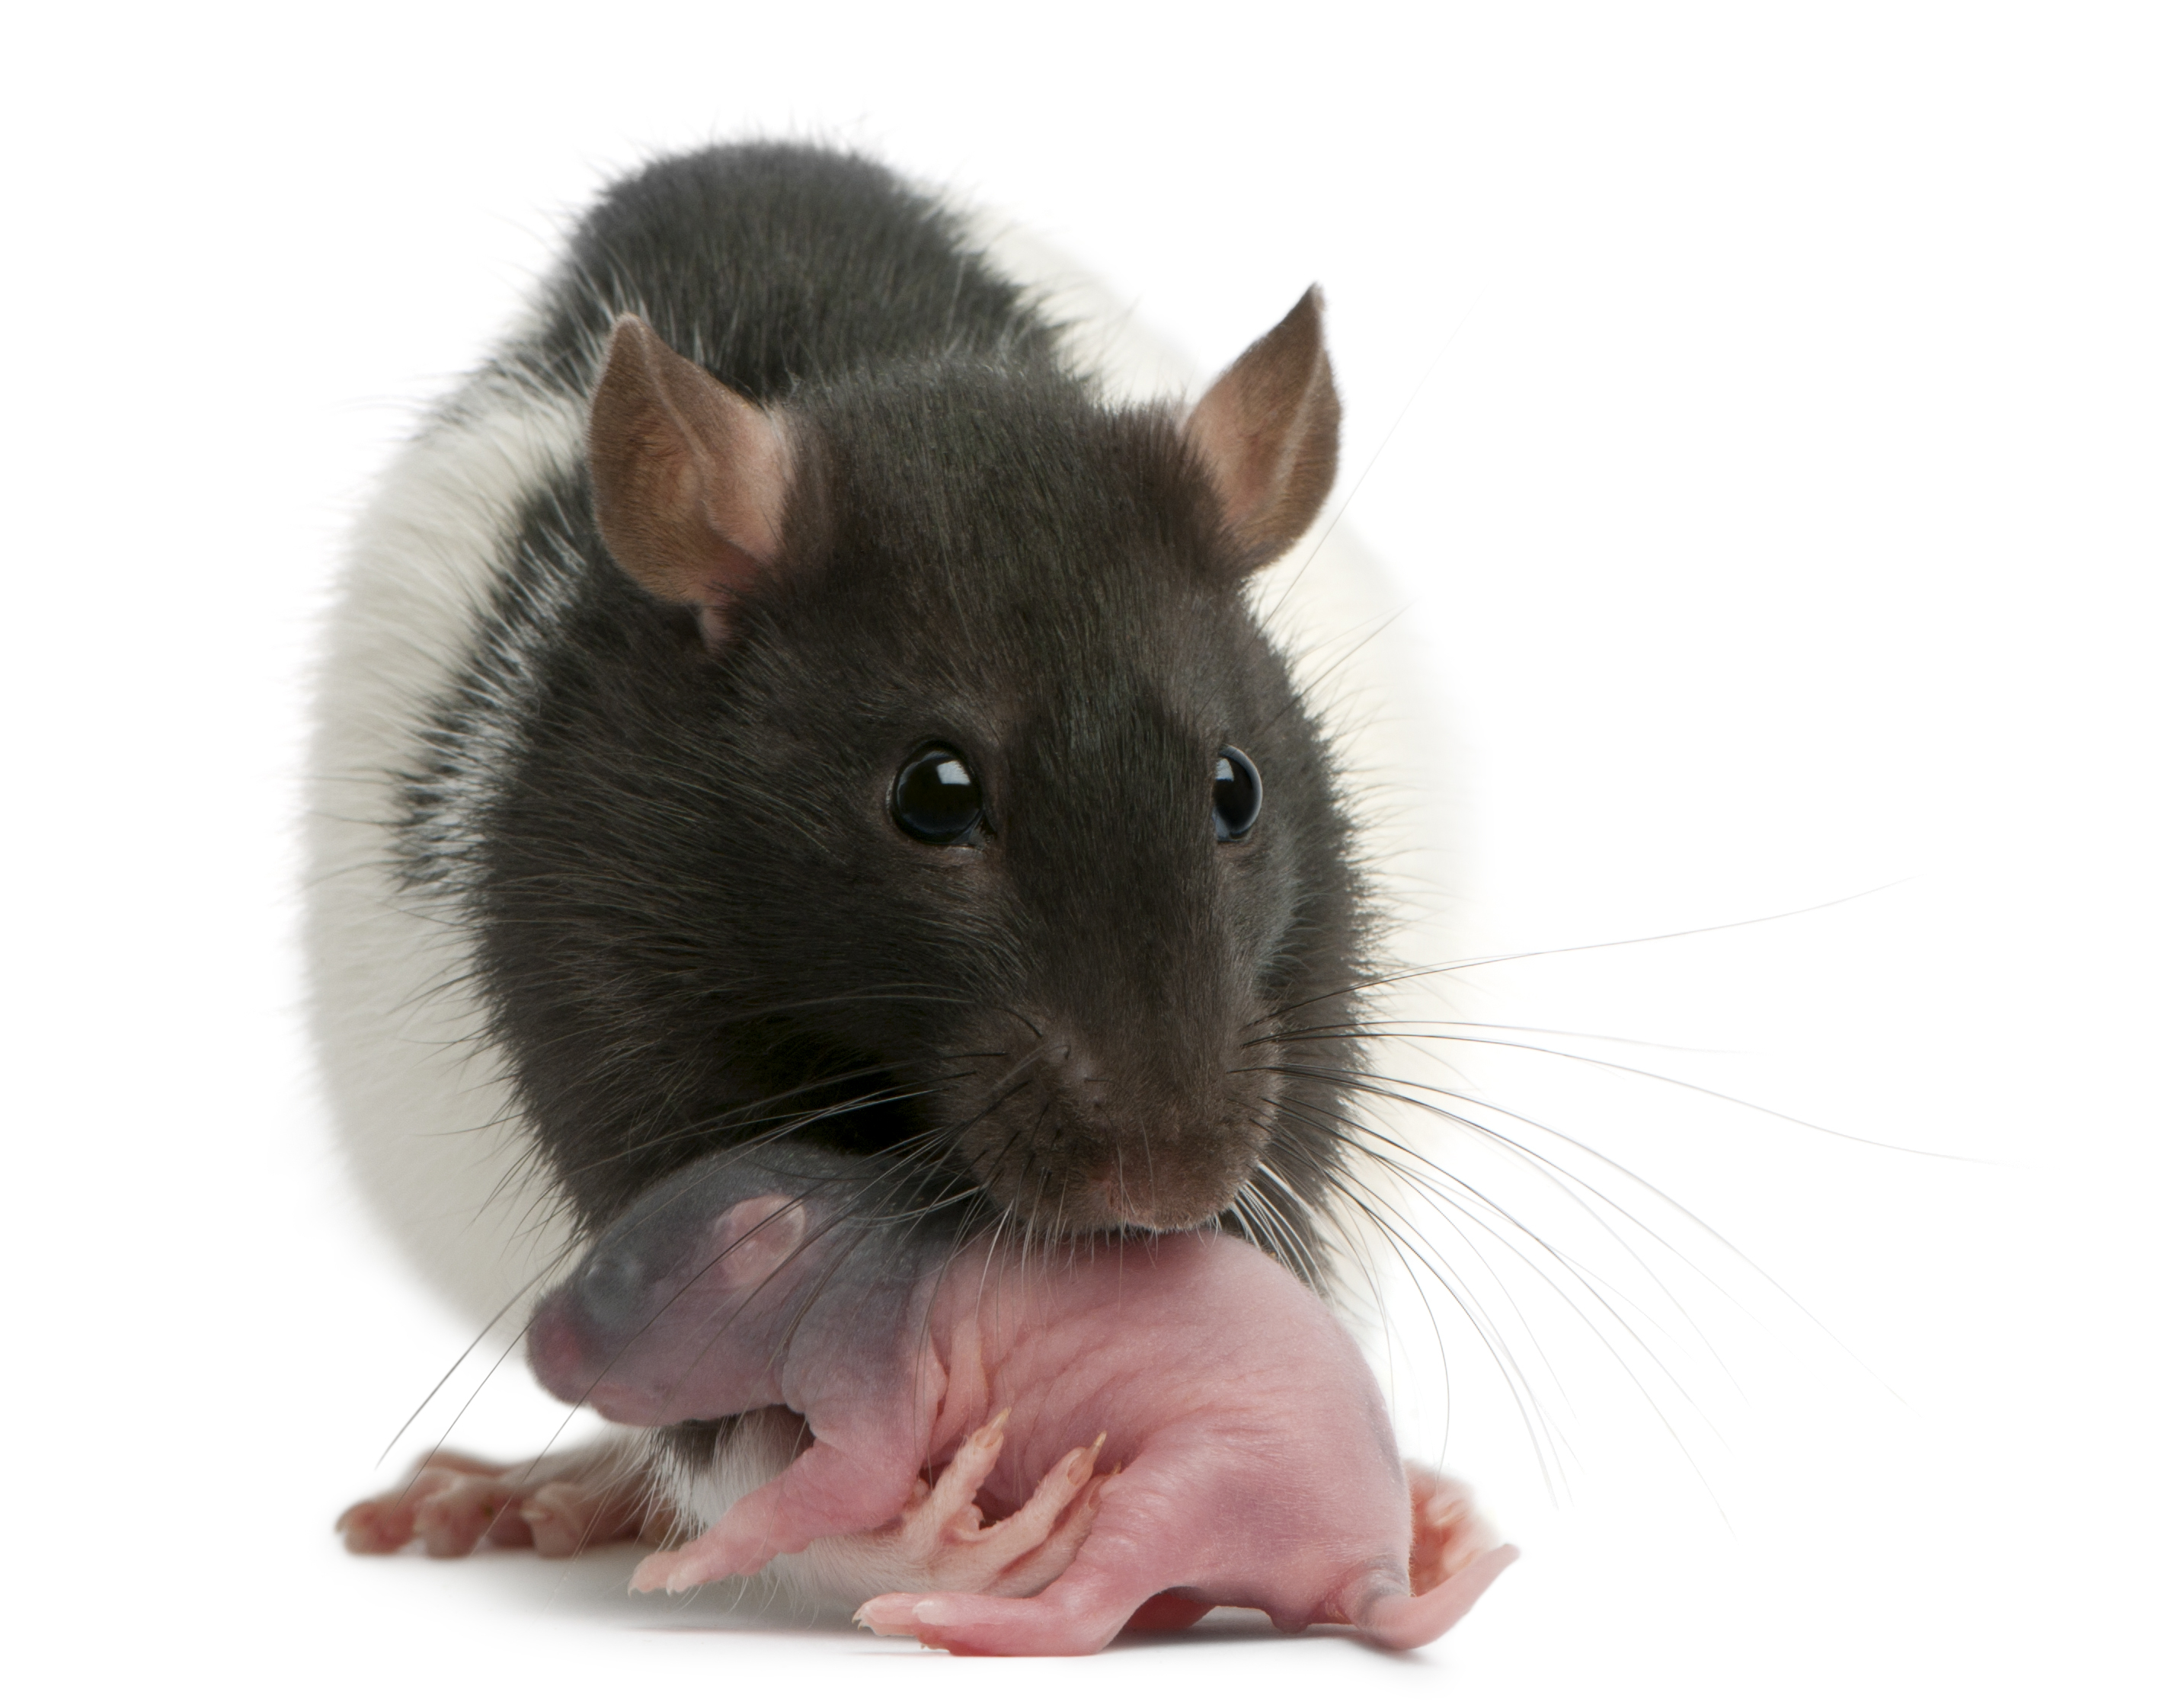 rat_mother_with_newborn.jpg